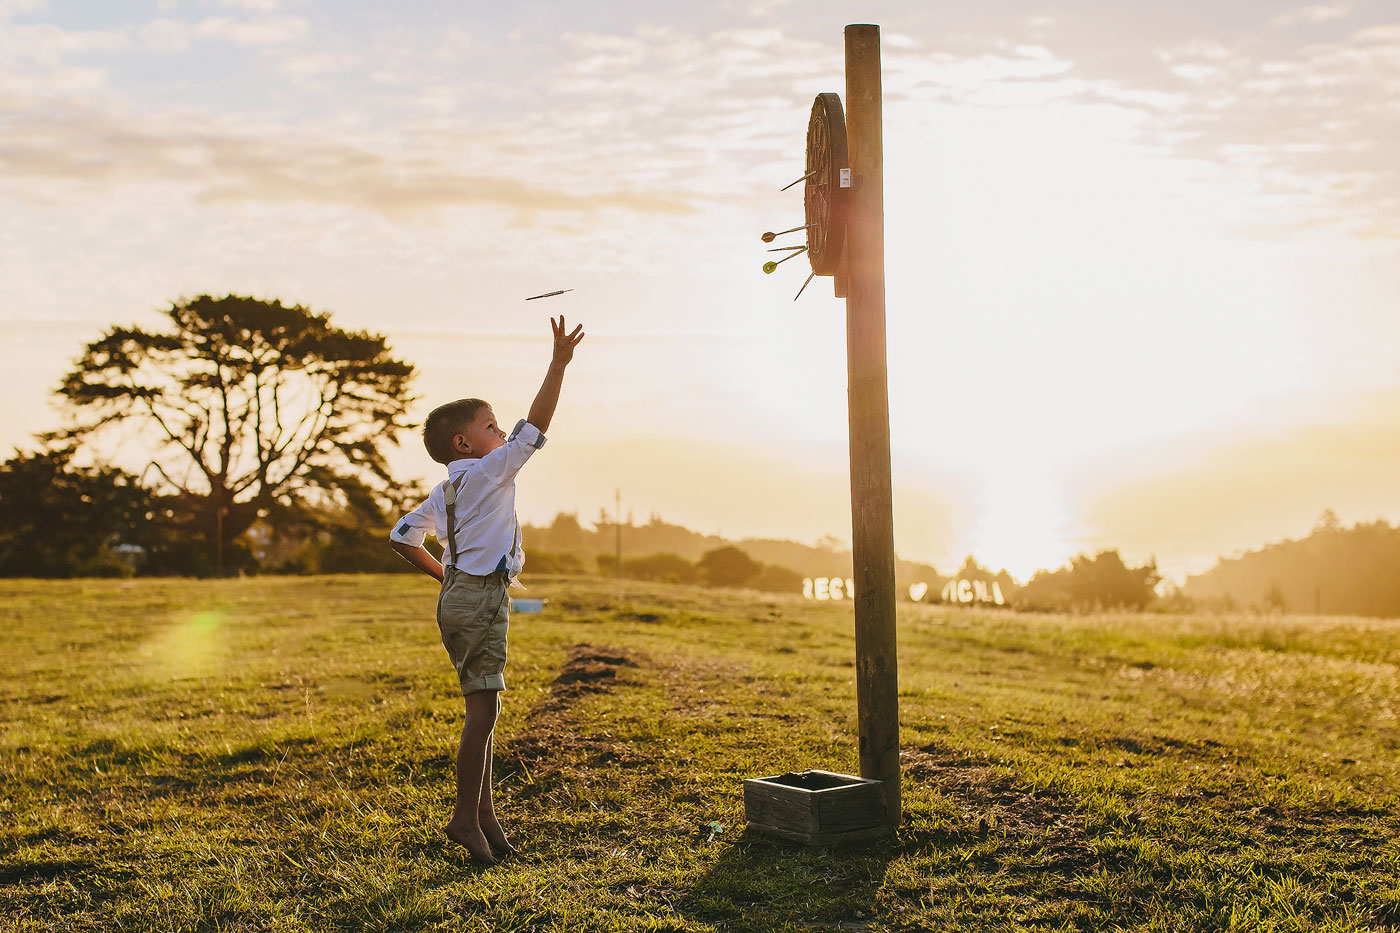 Ringbearer at a wedding in South Africa playing Darts at Sunset.